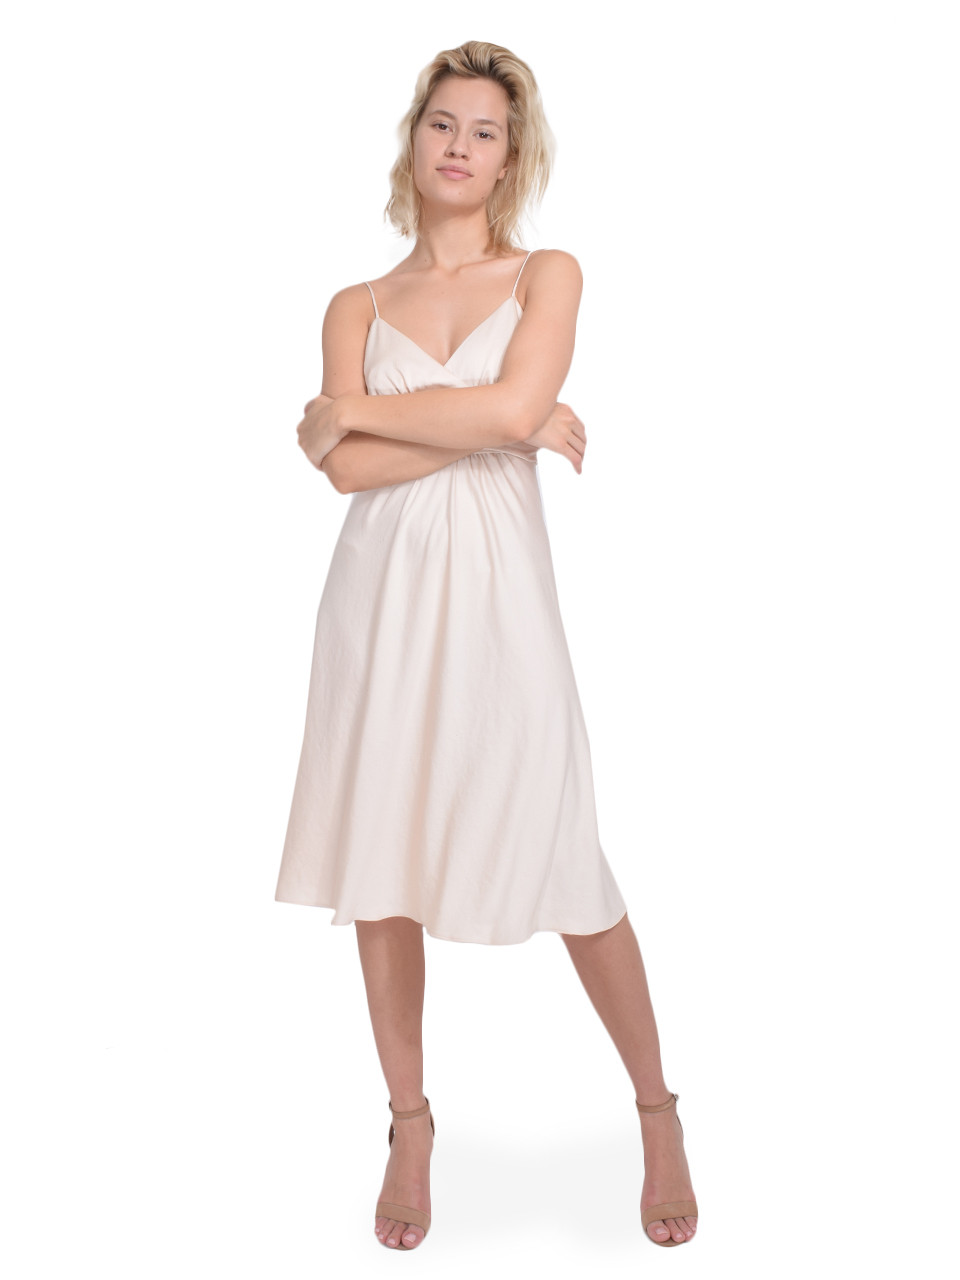 Ba&sh Dixie Dress in Champagne Front View  X1https://cdn11.bigcommerce.com/s-3wu6n/products/33234/images/109598/134__68623.1590711249.244.365.jpg?c=2X2